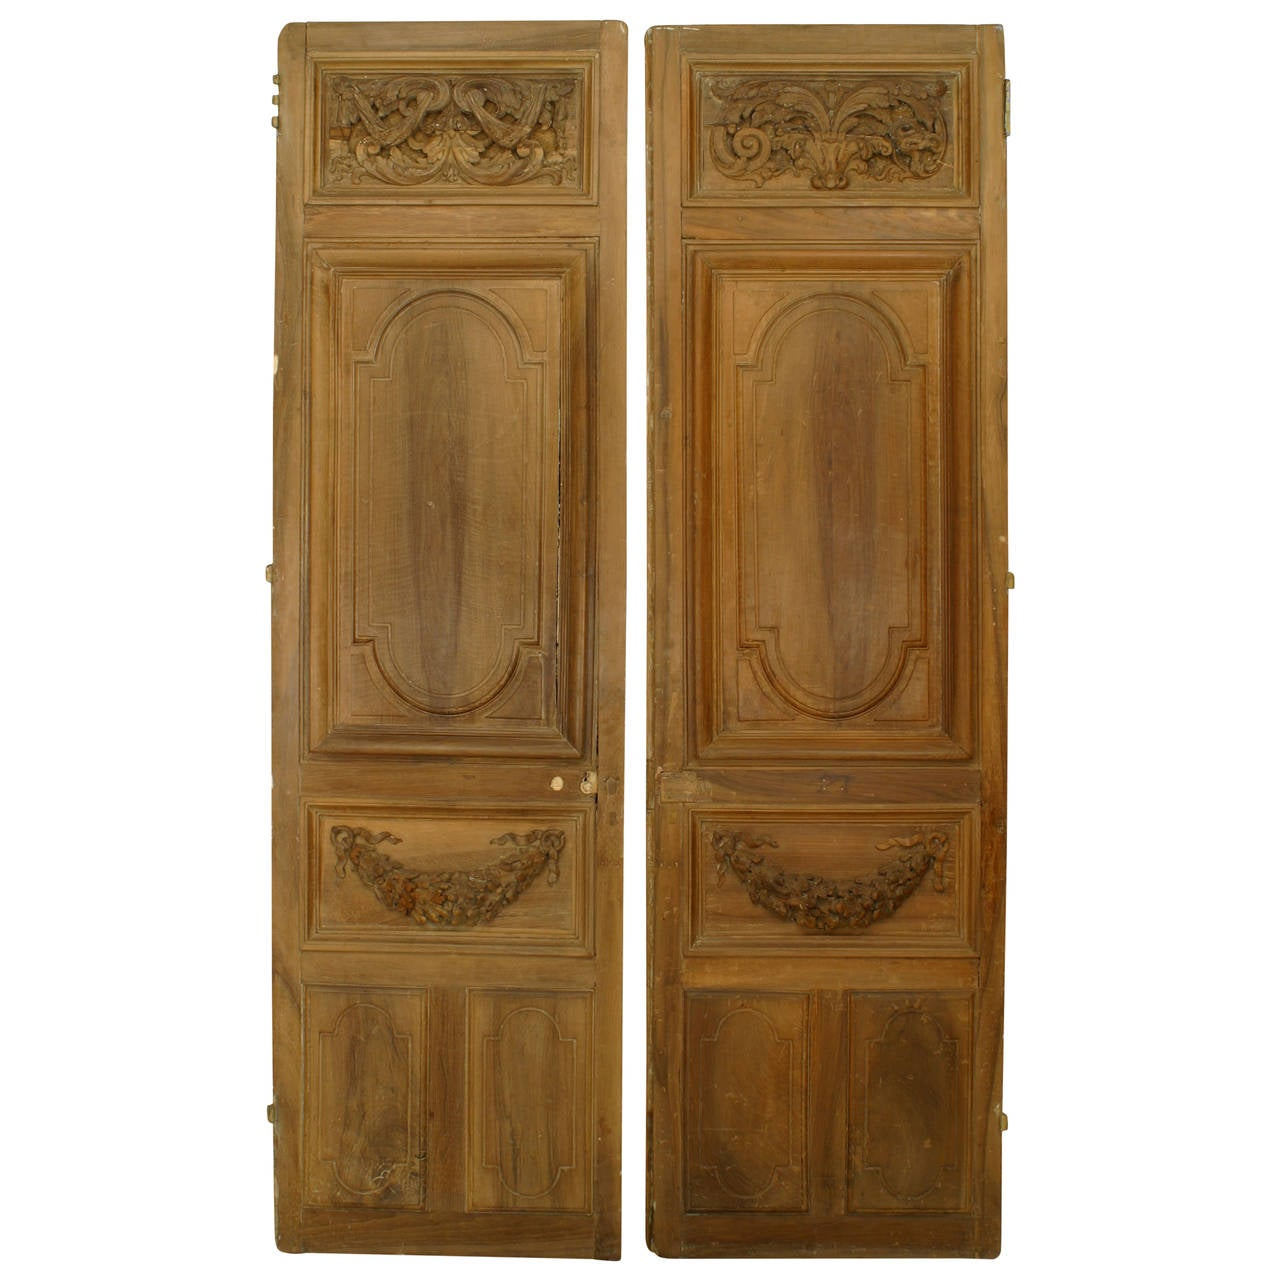 Pair of french carved wood doors for sale at 1stdibs for Wooden french doors